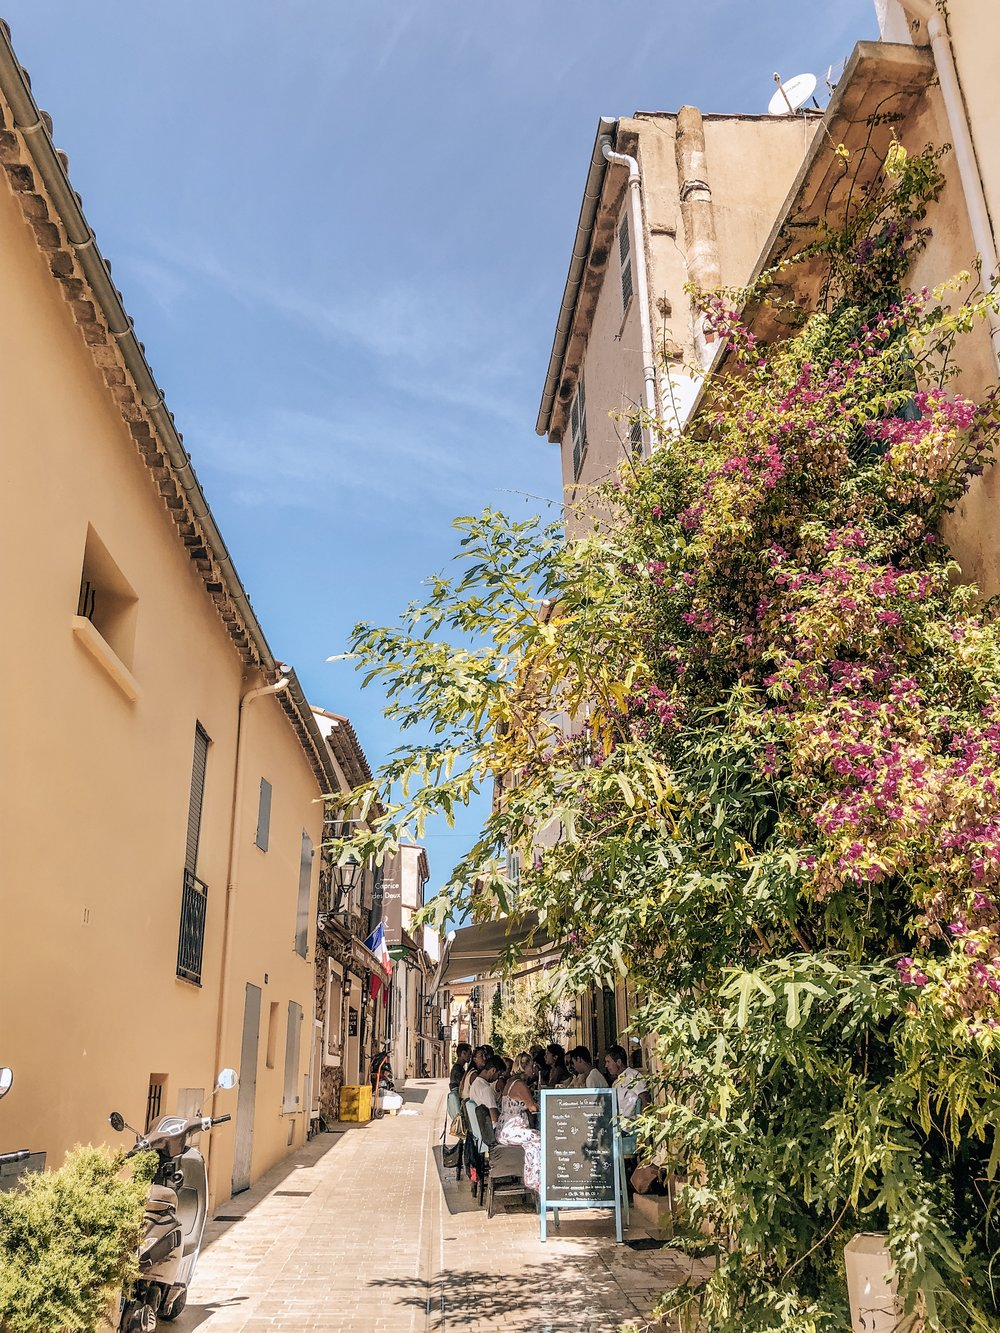 What to do in Saint-Tropez, France